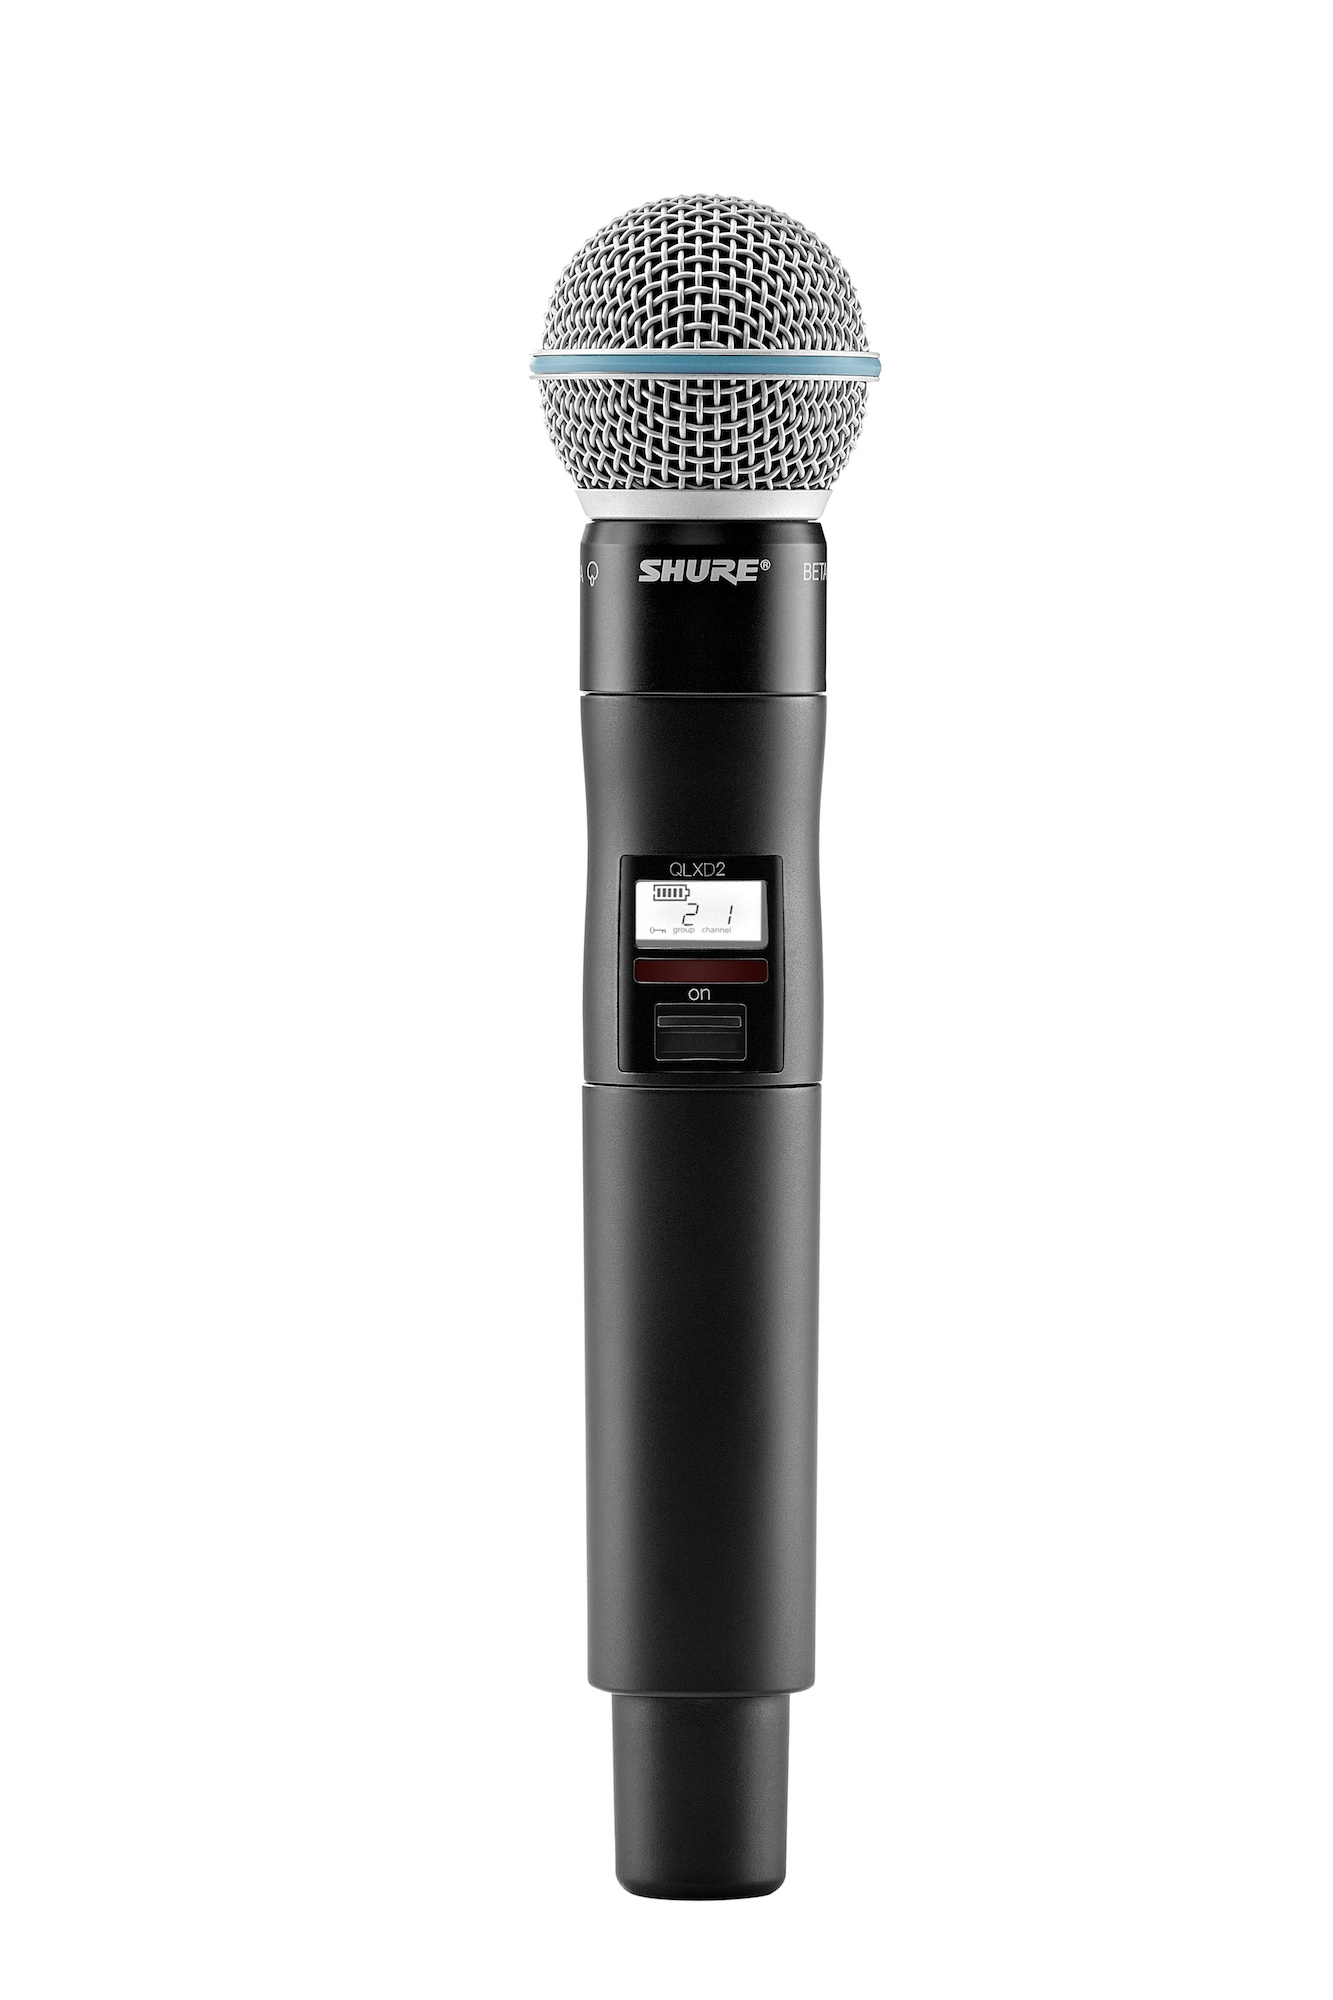 shure qlxd2 beta58a handheld wireless microphone transmitter pro audio superstore. Black Bedroom Furniture Sets. Home Design Ideas